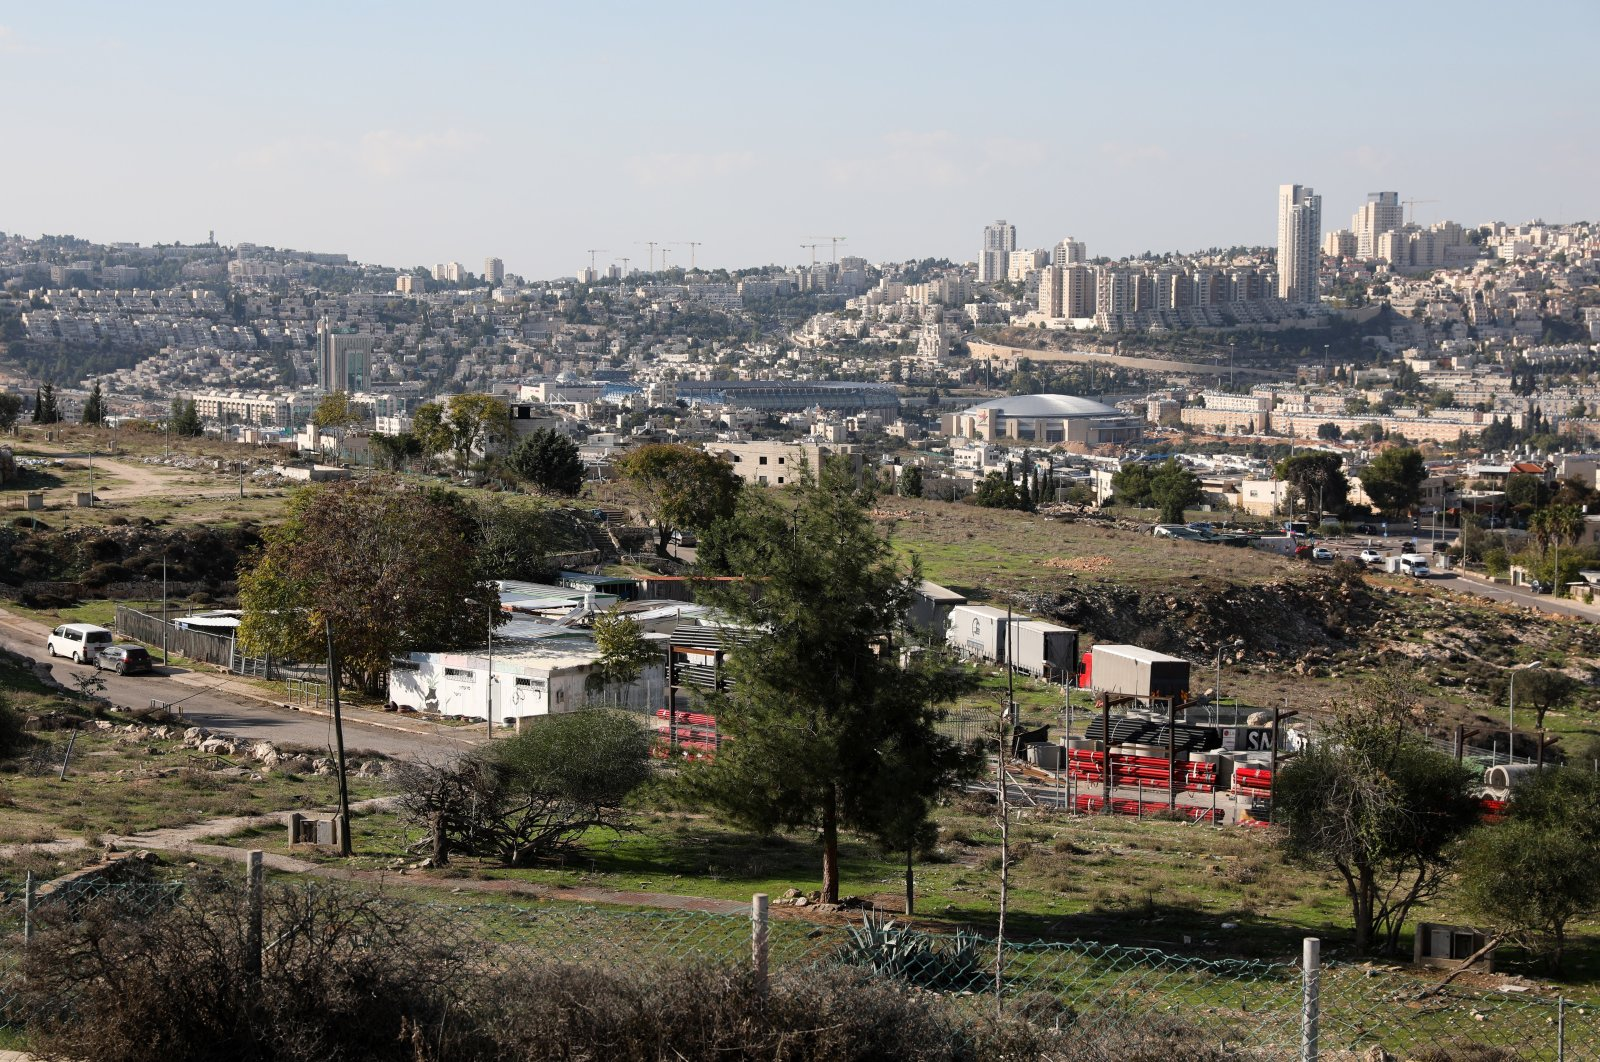 A general view of the Givat Hamatos Jewish Settlement neighborhood in east Jerusalem, Nov. 17, 2020. (EPA Photo)